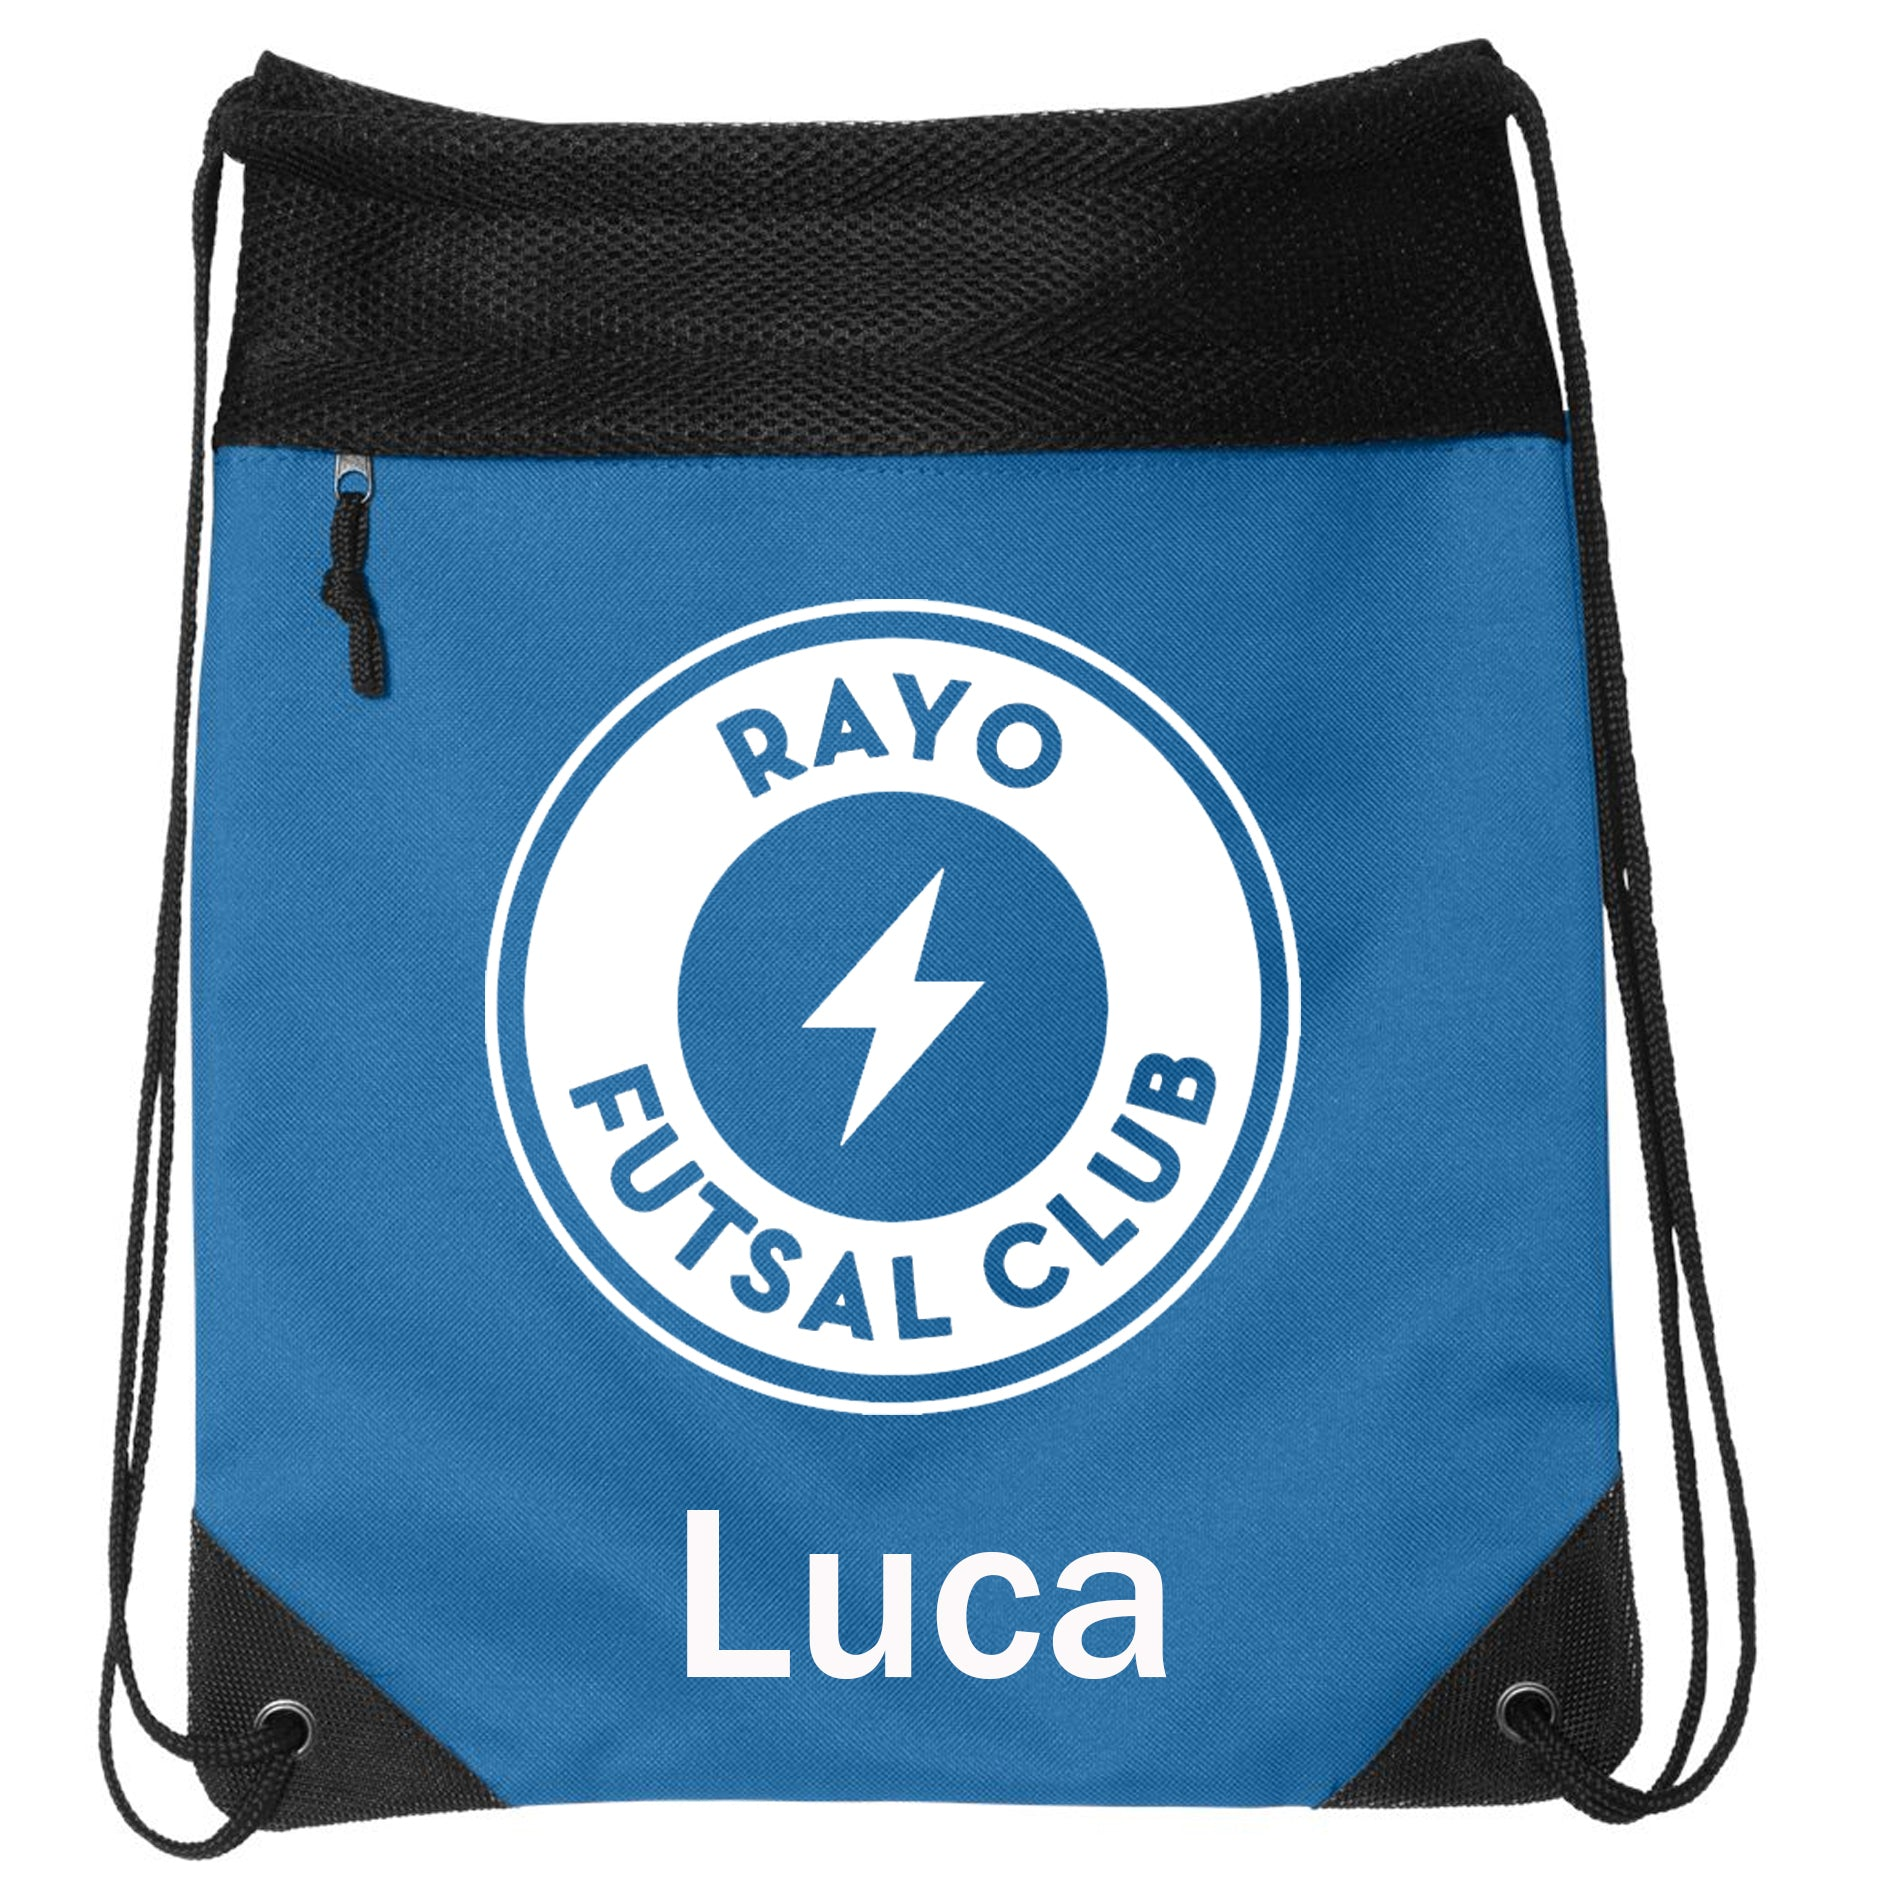 Rayo Futsal Club Liberty Bags - Coast to Coast Drawstring Backpack